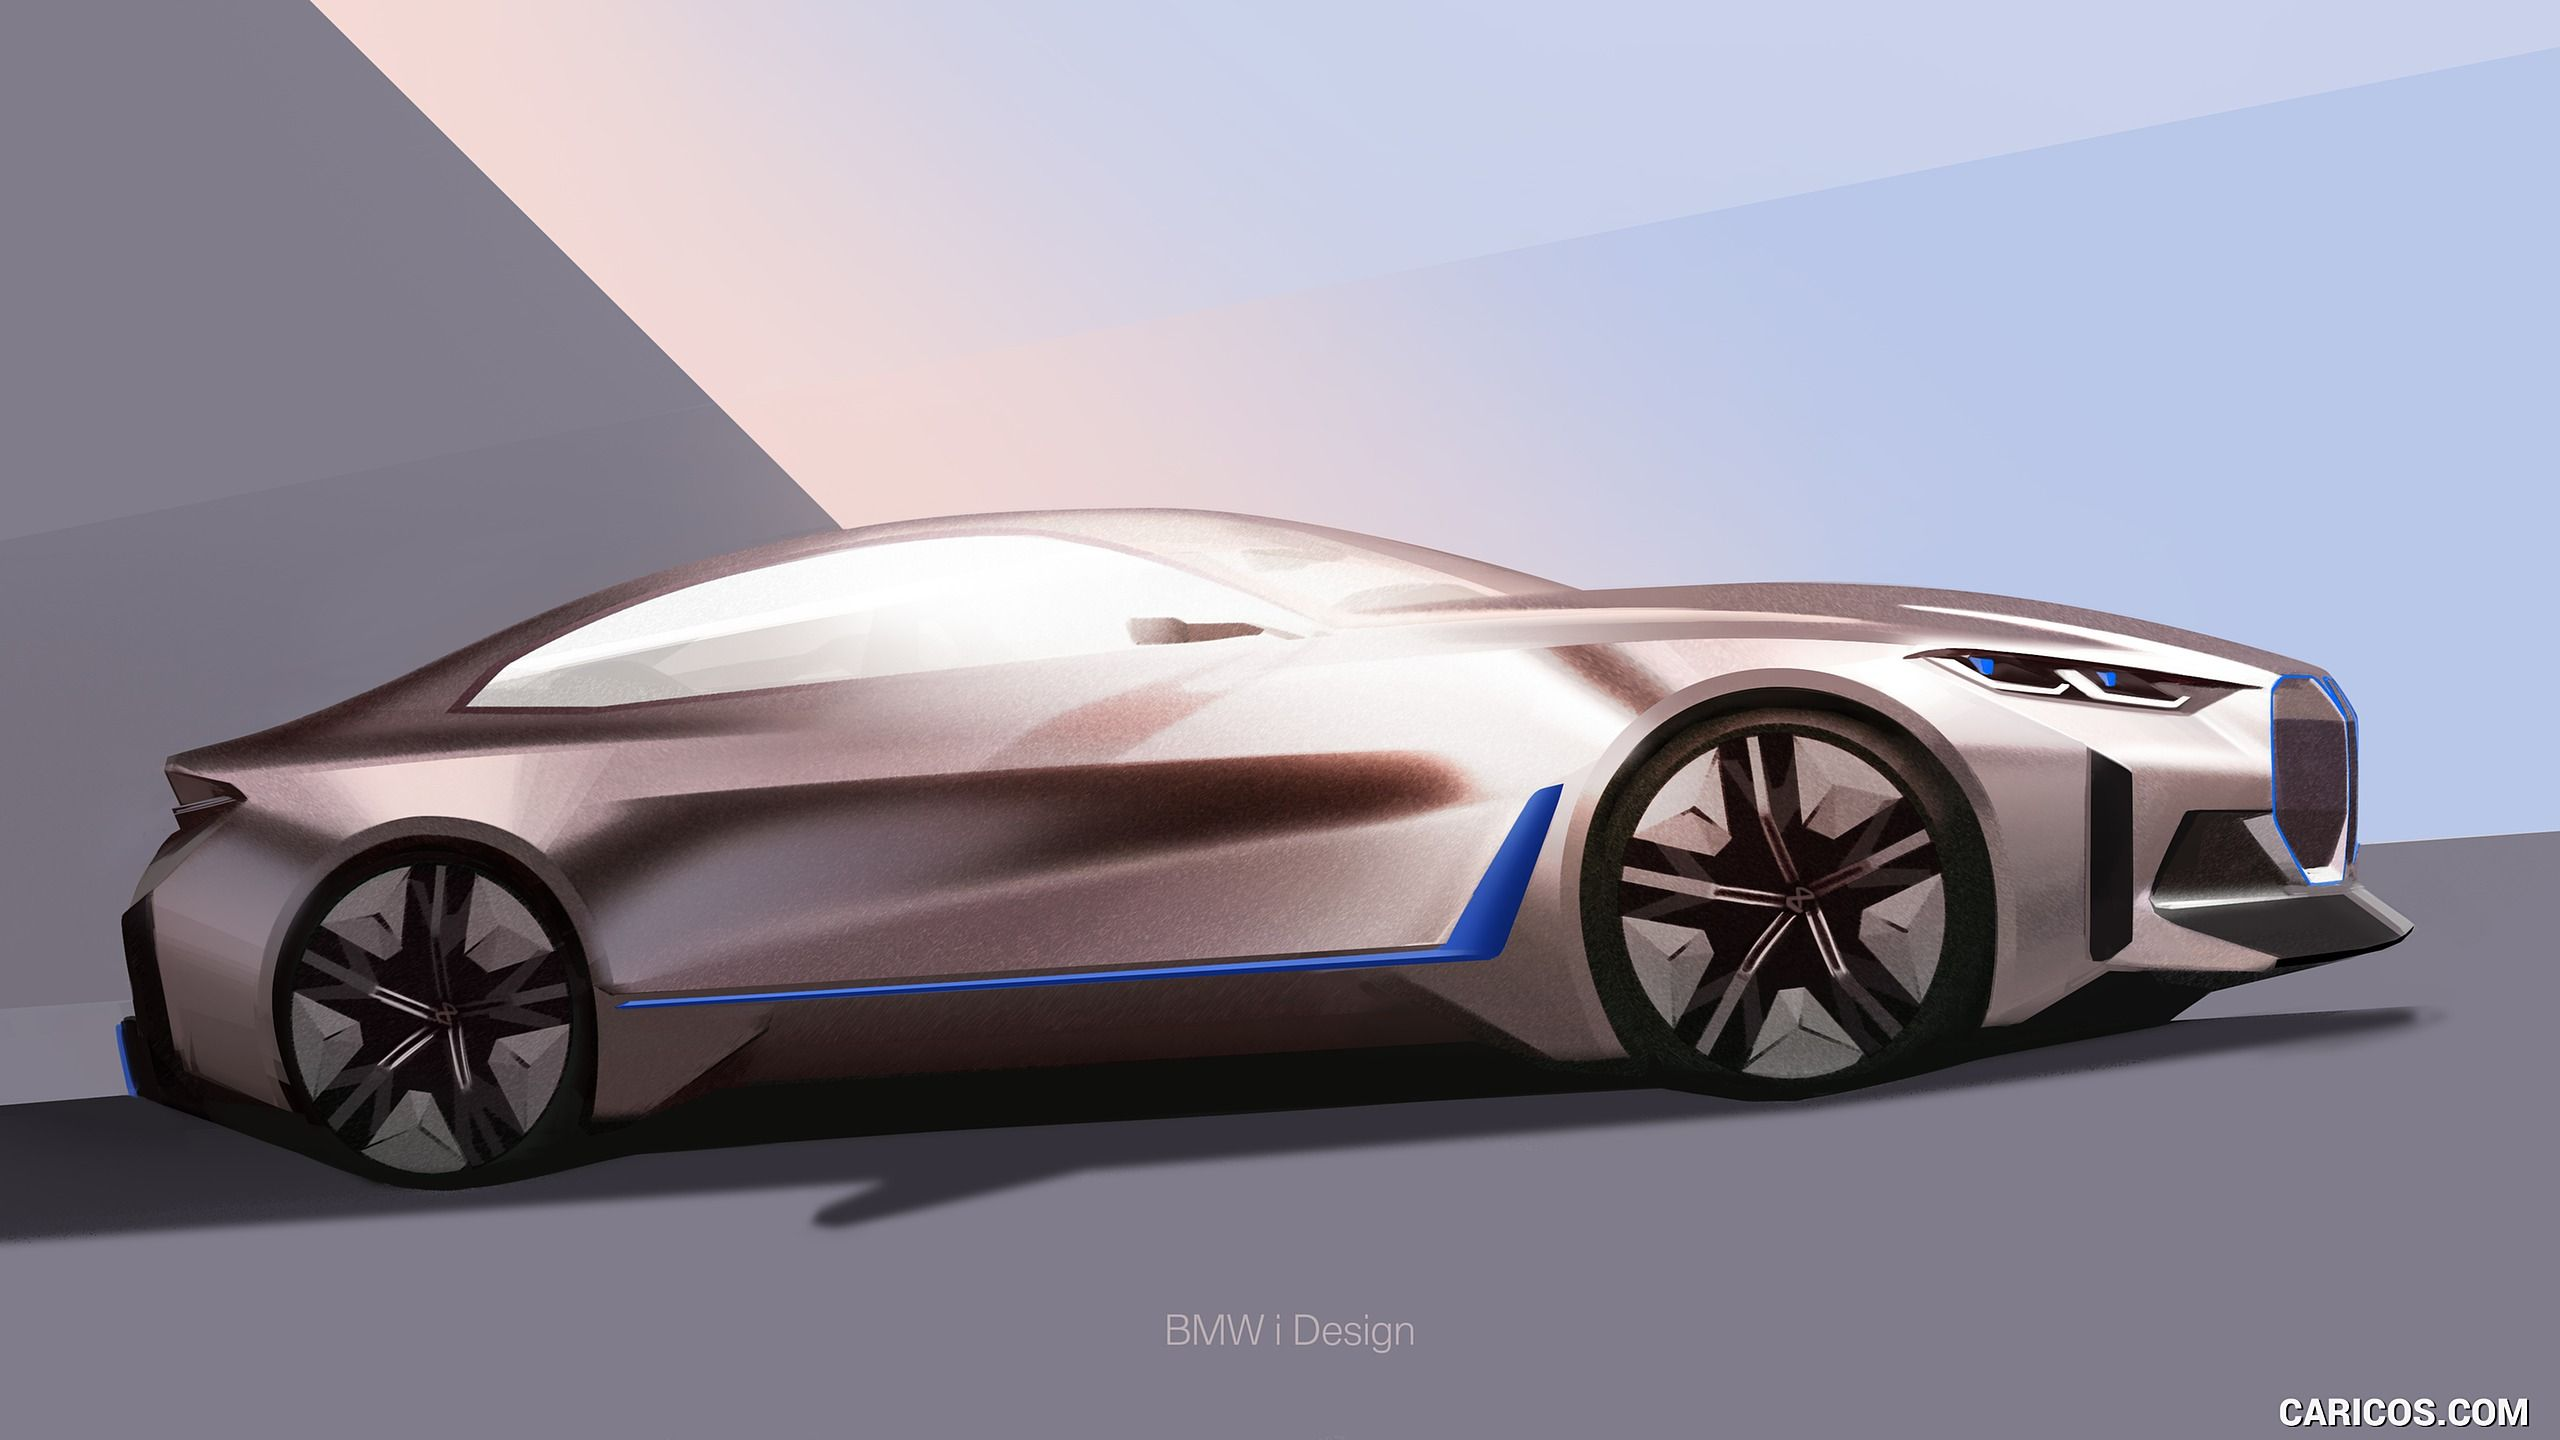 Bmwi4concept Rose Gold Eucalyptus Wood Natural Interior Crystals I M In Love My First Electric Car For Sure In 2020